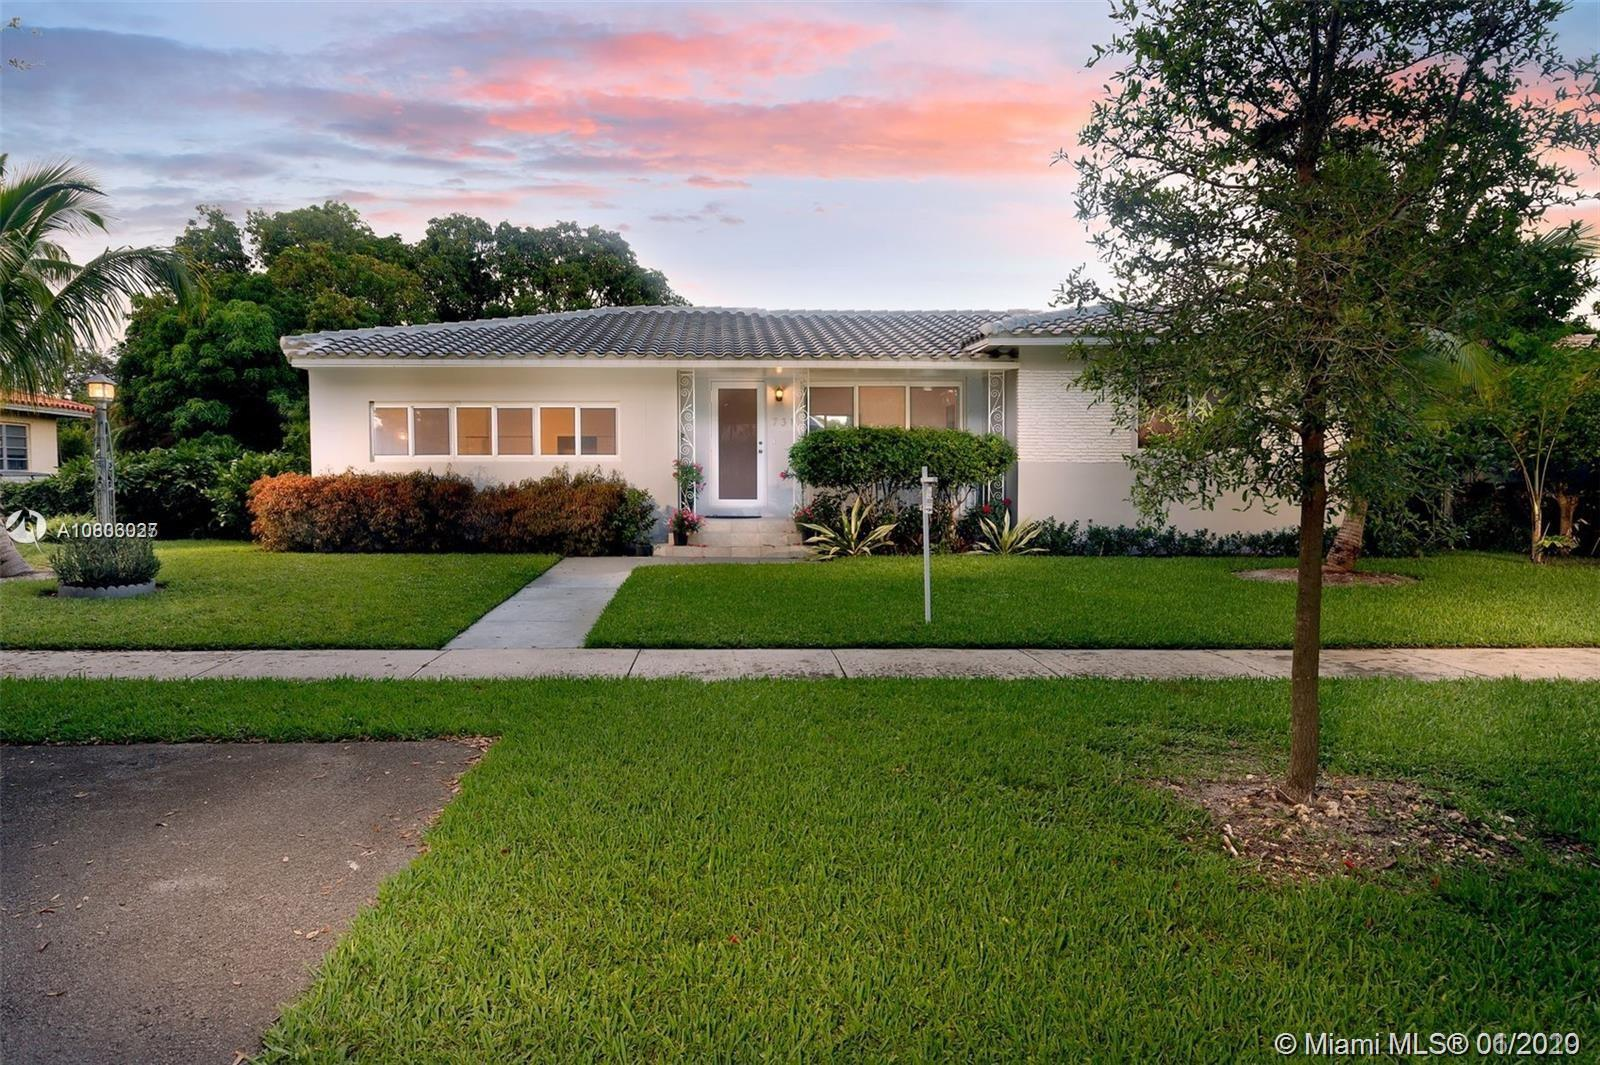 Charming 3/2 completely Renovated Home with 10,725 SqFt Lot in the Heart of Miami Shores. New Kitche